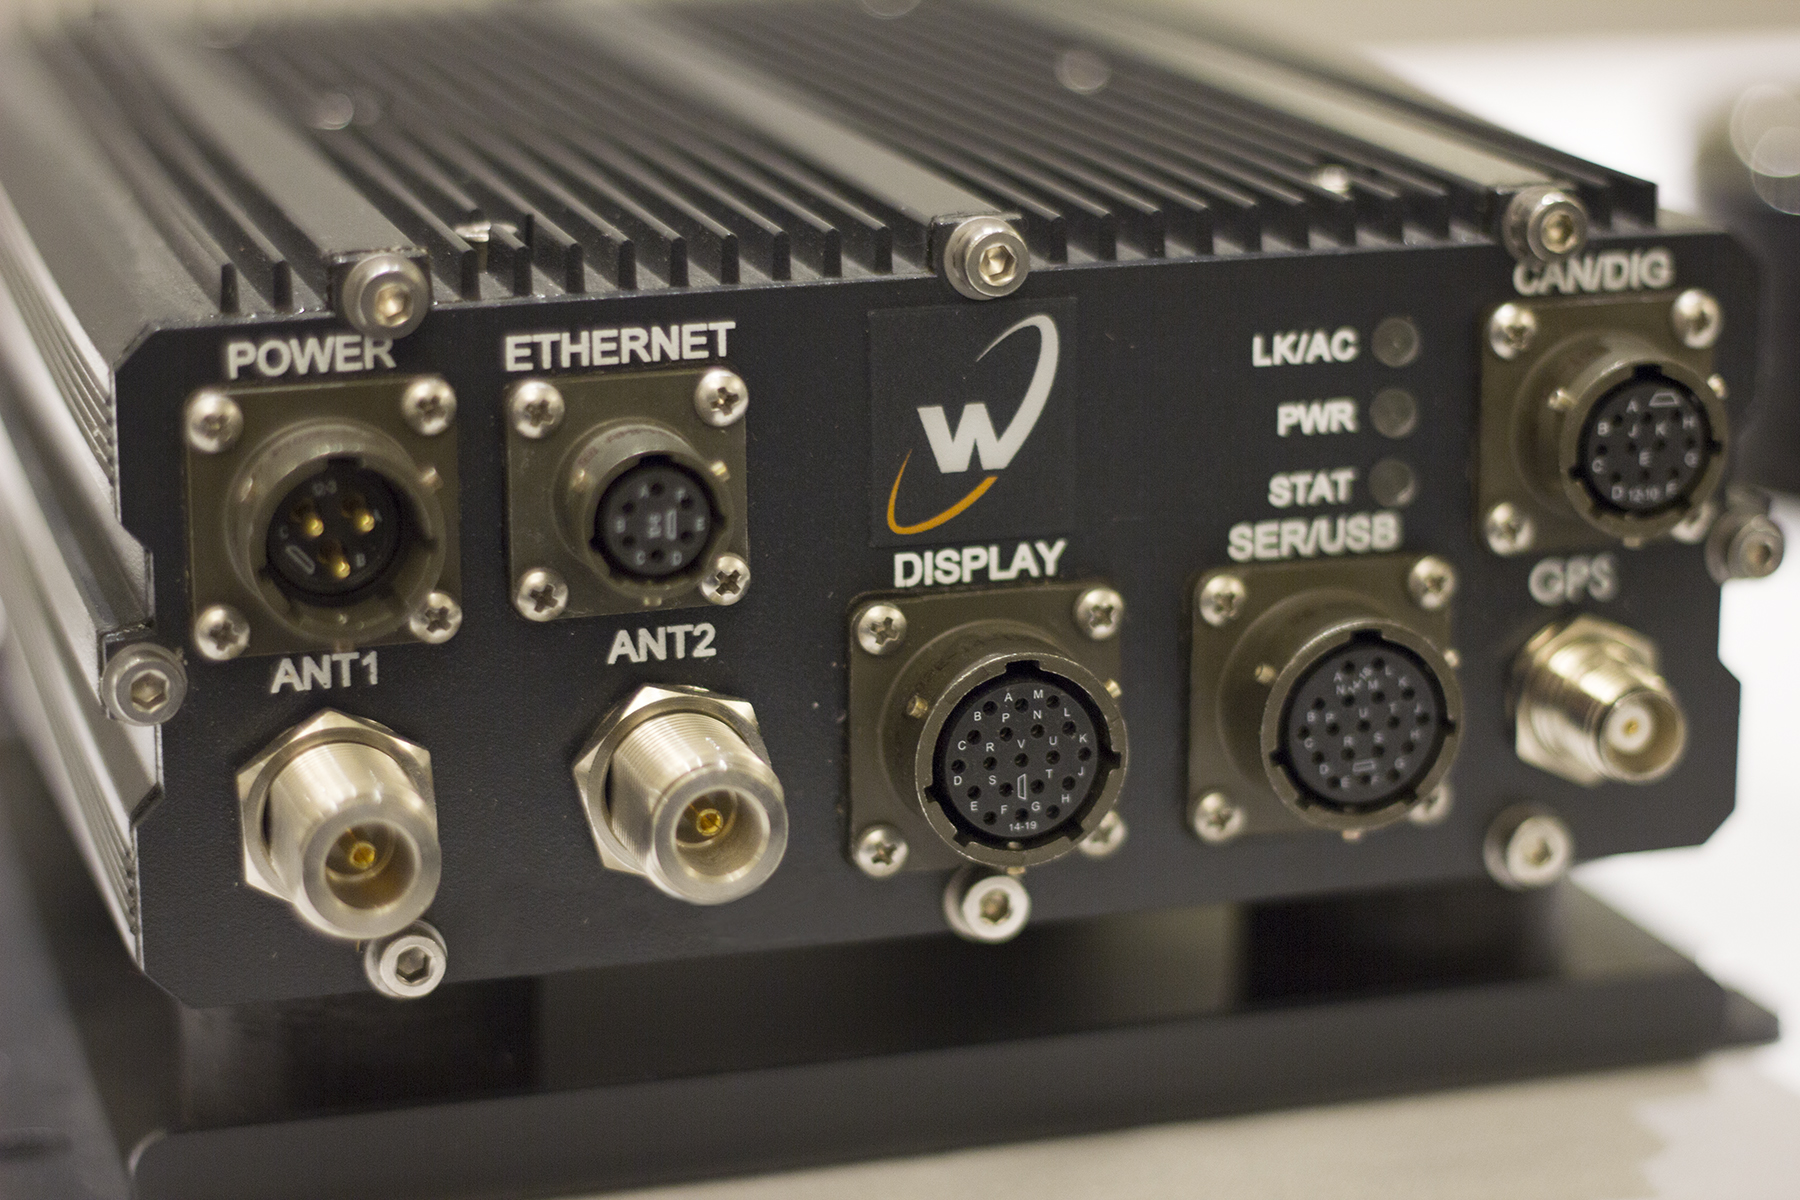 Wenco International Mining Systems wants to inform customers and other interested parties of a change in the supplier of its Trax line of ruggedized computer hardware.